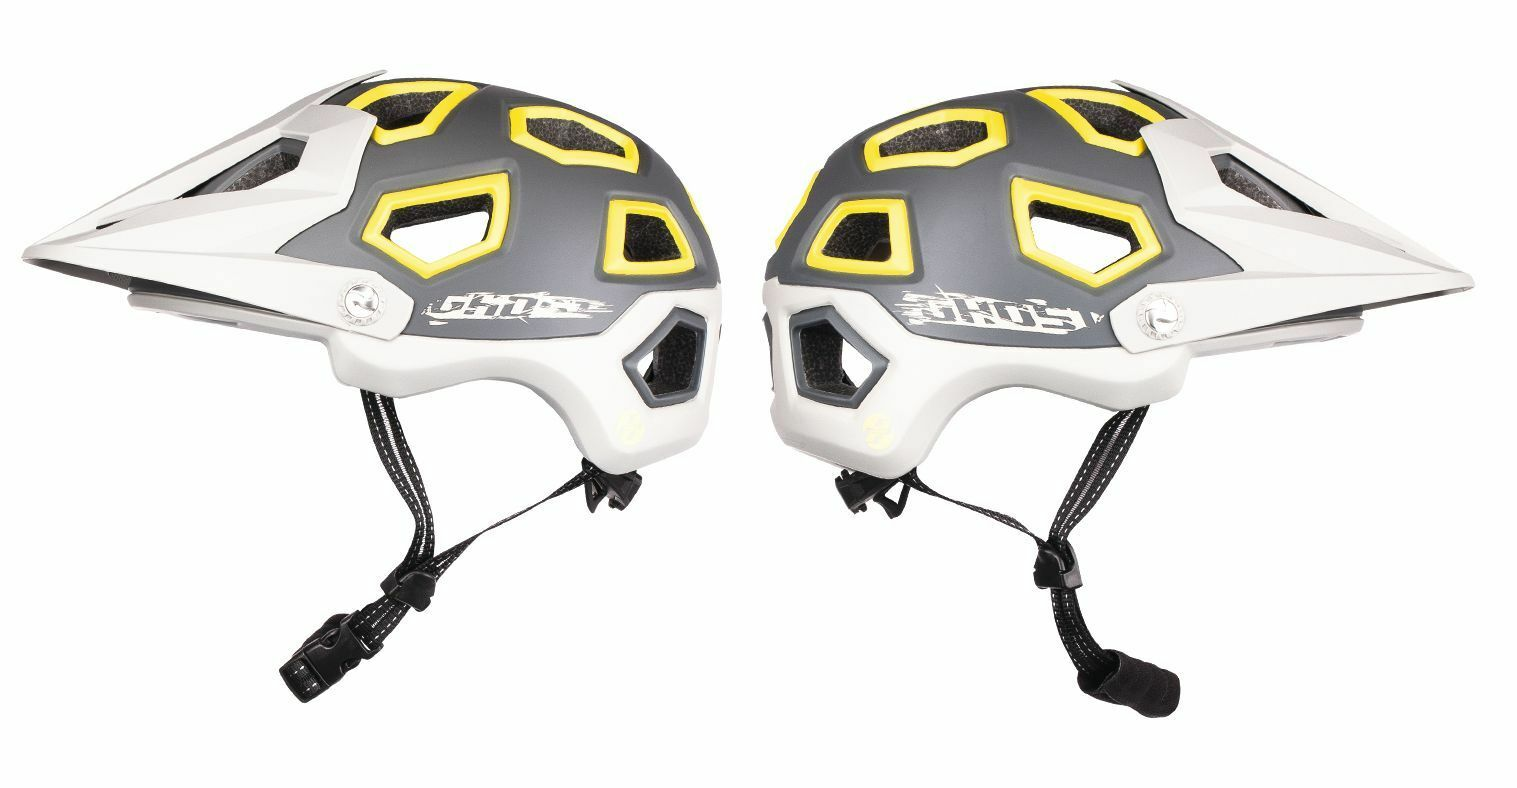 Ghost All Mountain Helmet-gris gris jaune-Taille 57-61 Cm Bike Helmet